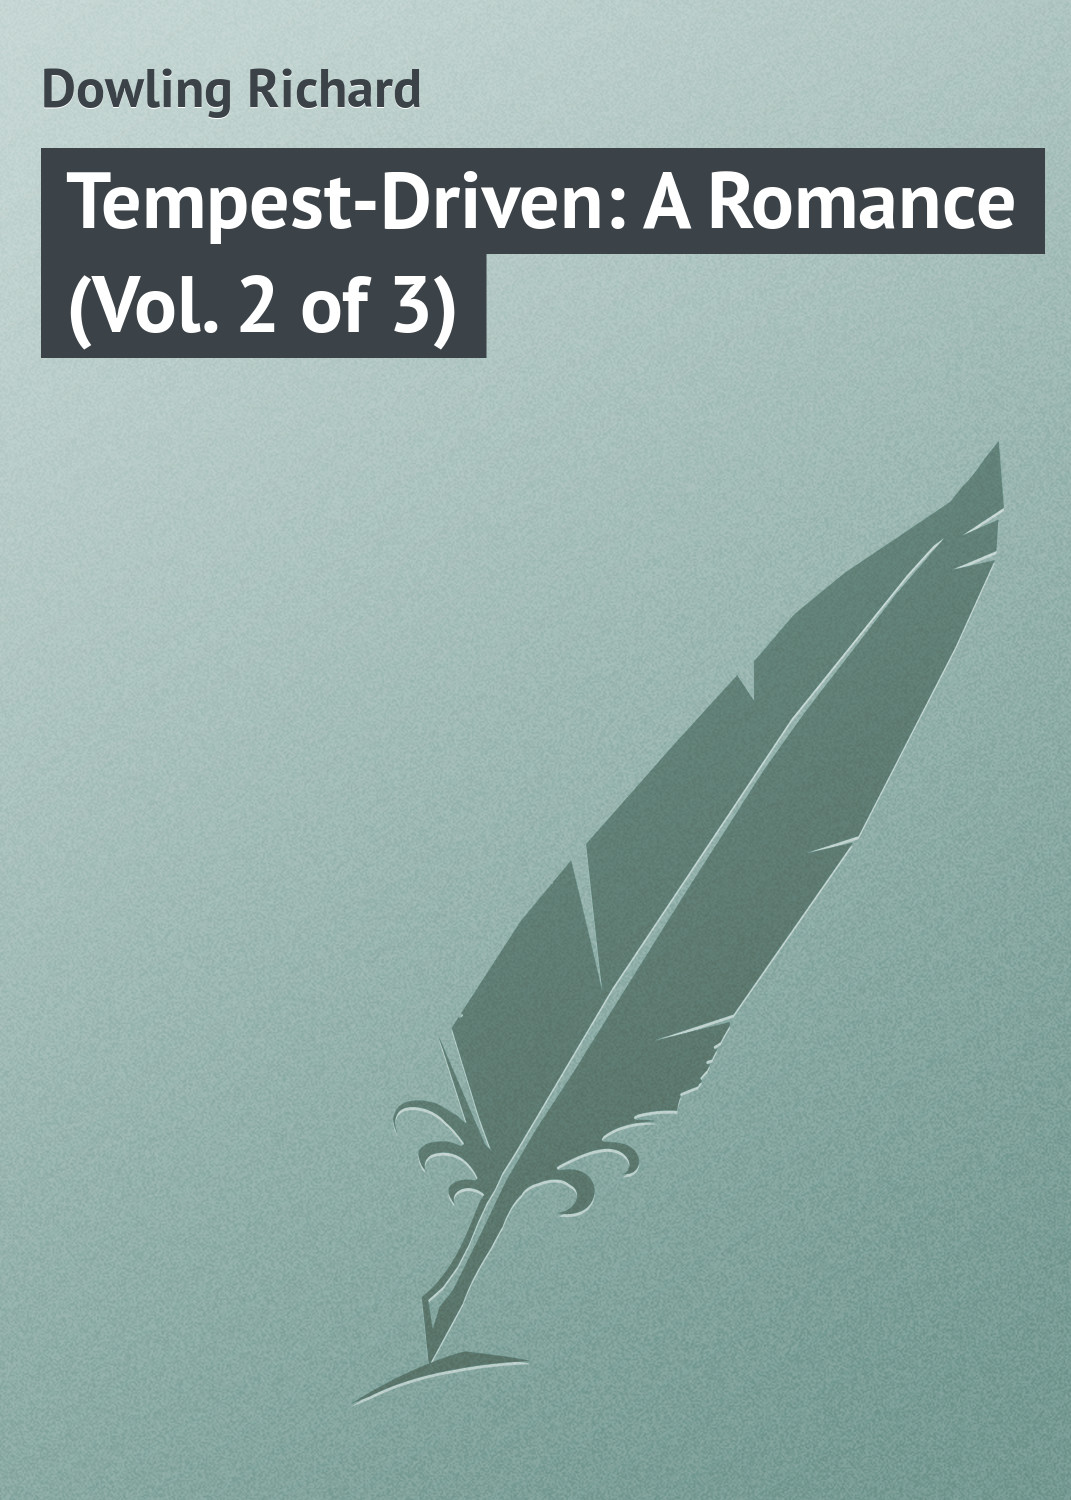 Dowling Richard Tempest-Driven: A Romance (Vol. 2 of 3) dowling richard the weird sisters a romance volume 3 of 3